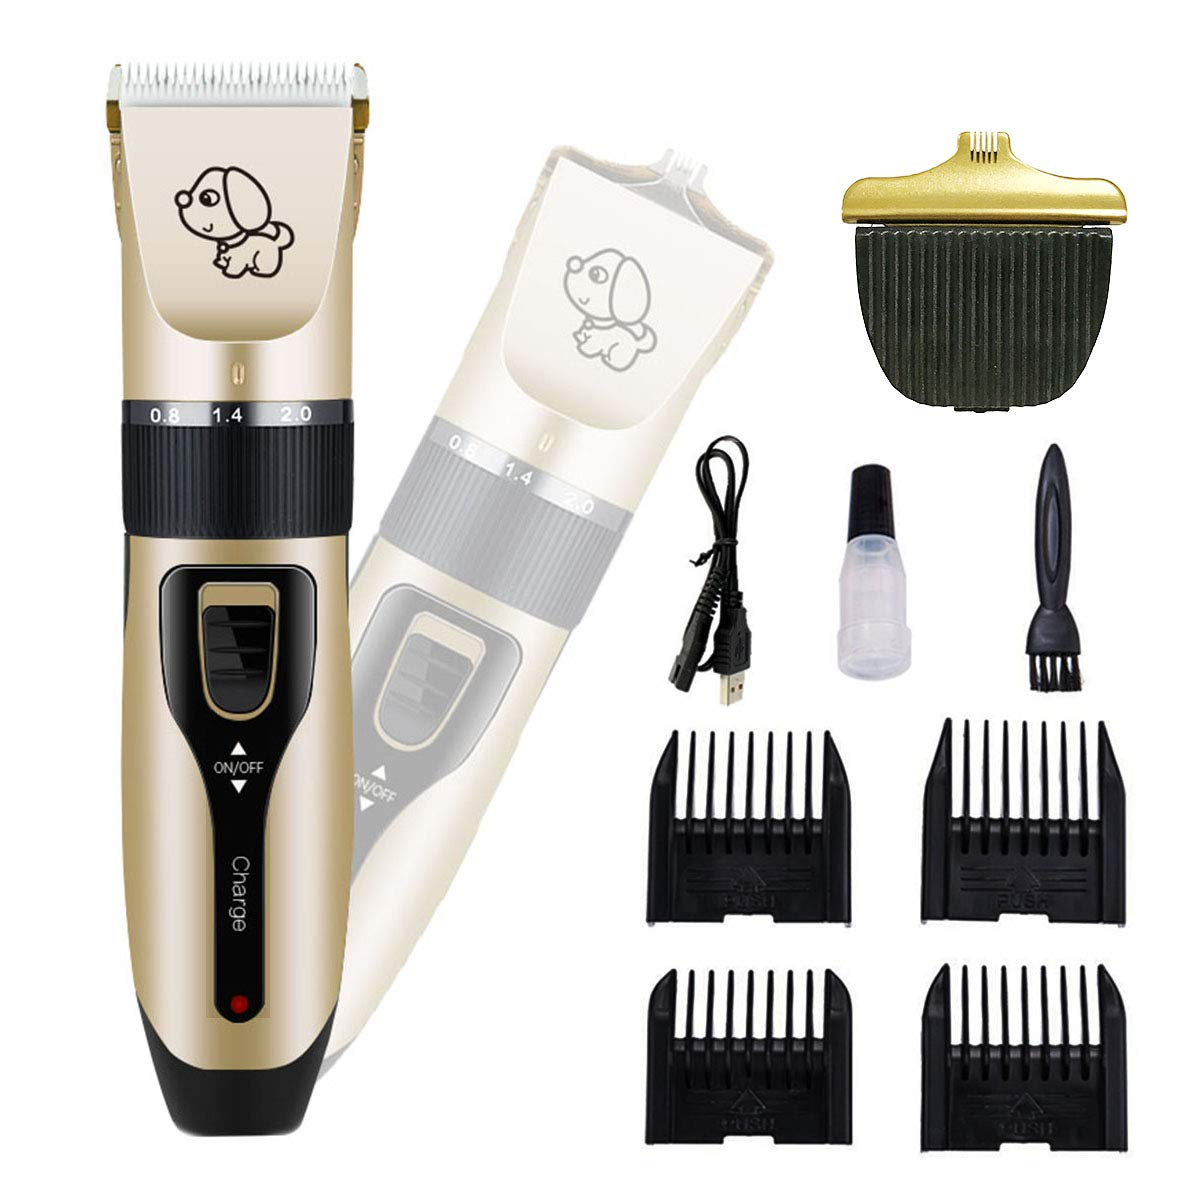 PetAZ Dog Grooming Clippers Professional Dog Clippers Two Kinds of Replaceable Blades Shaver Rechargeable and Cordless Pet Clippers Suitable Dogs, Cats and Other Animals, Face, Eyes, Ears, Paw, Aroun